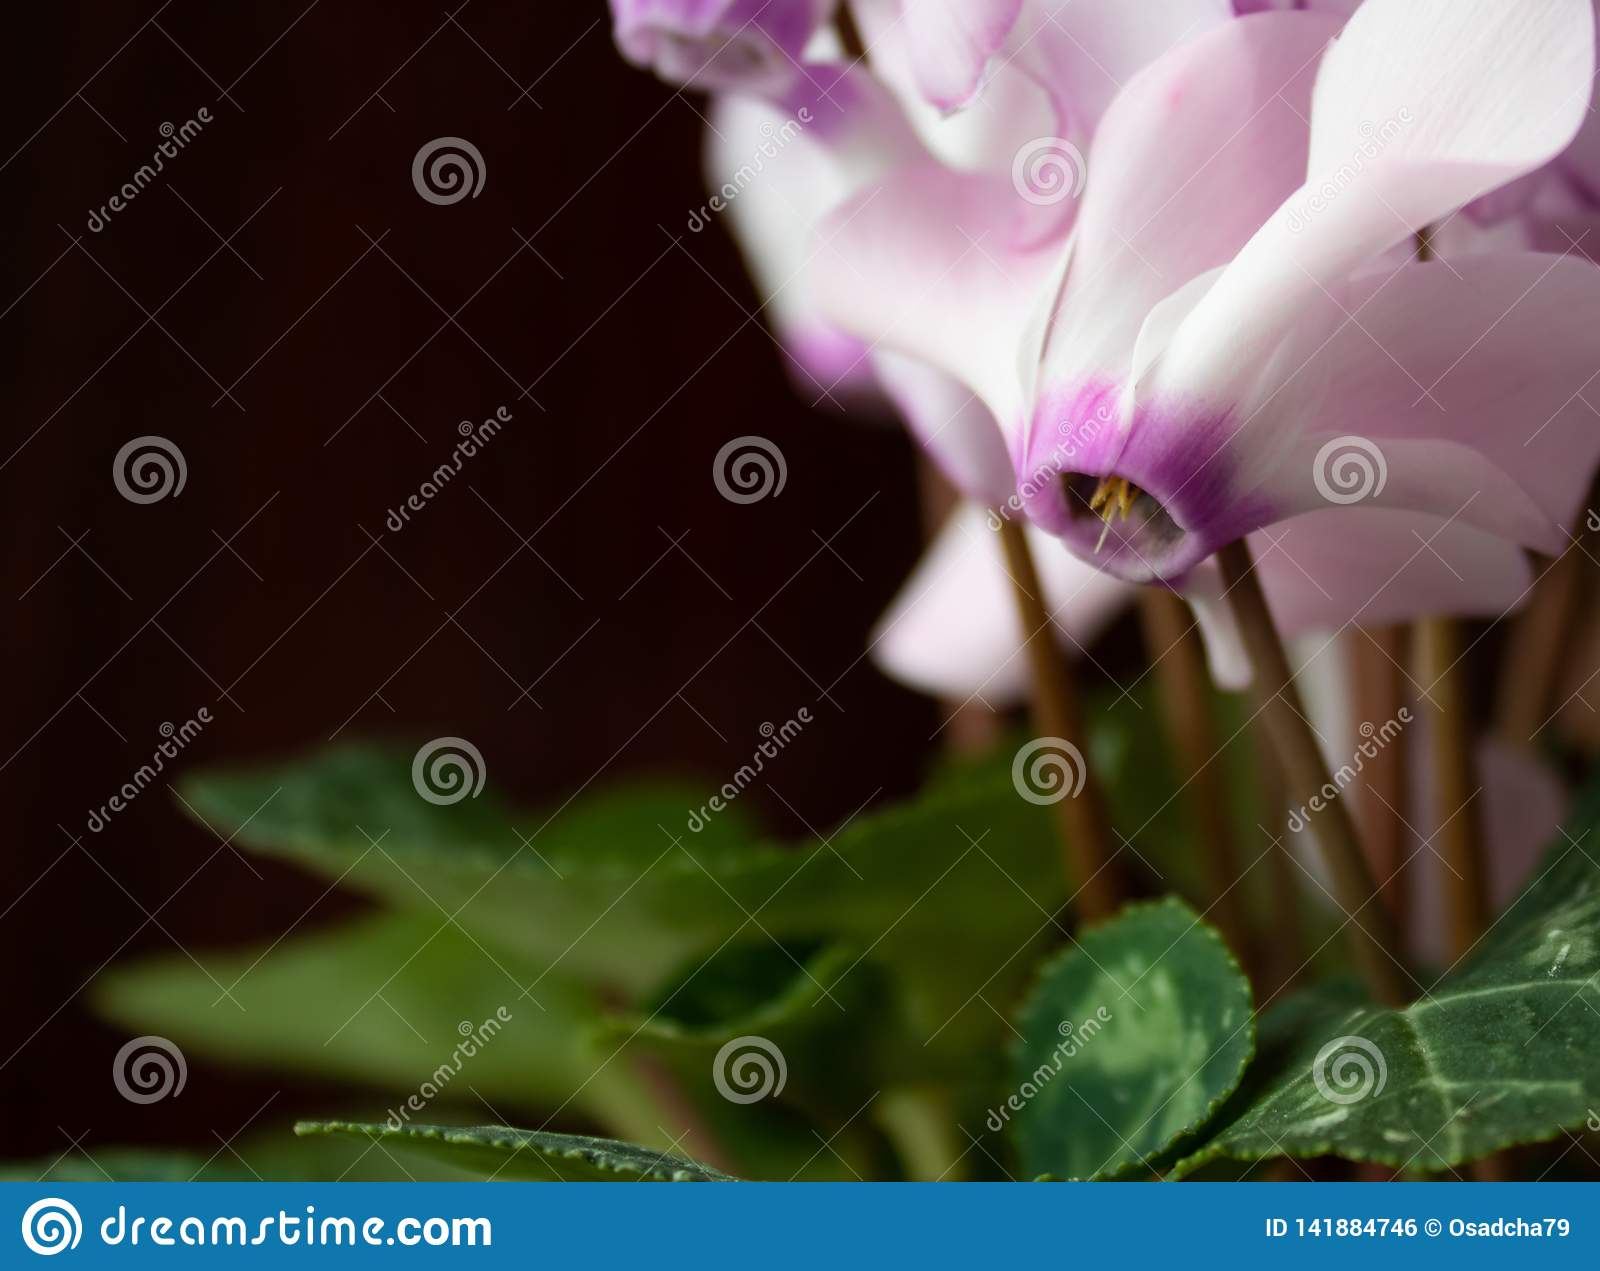 Pink flowers with green leaves on a black background